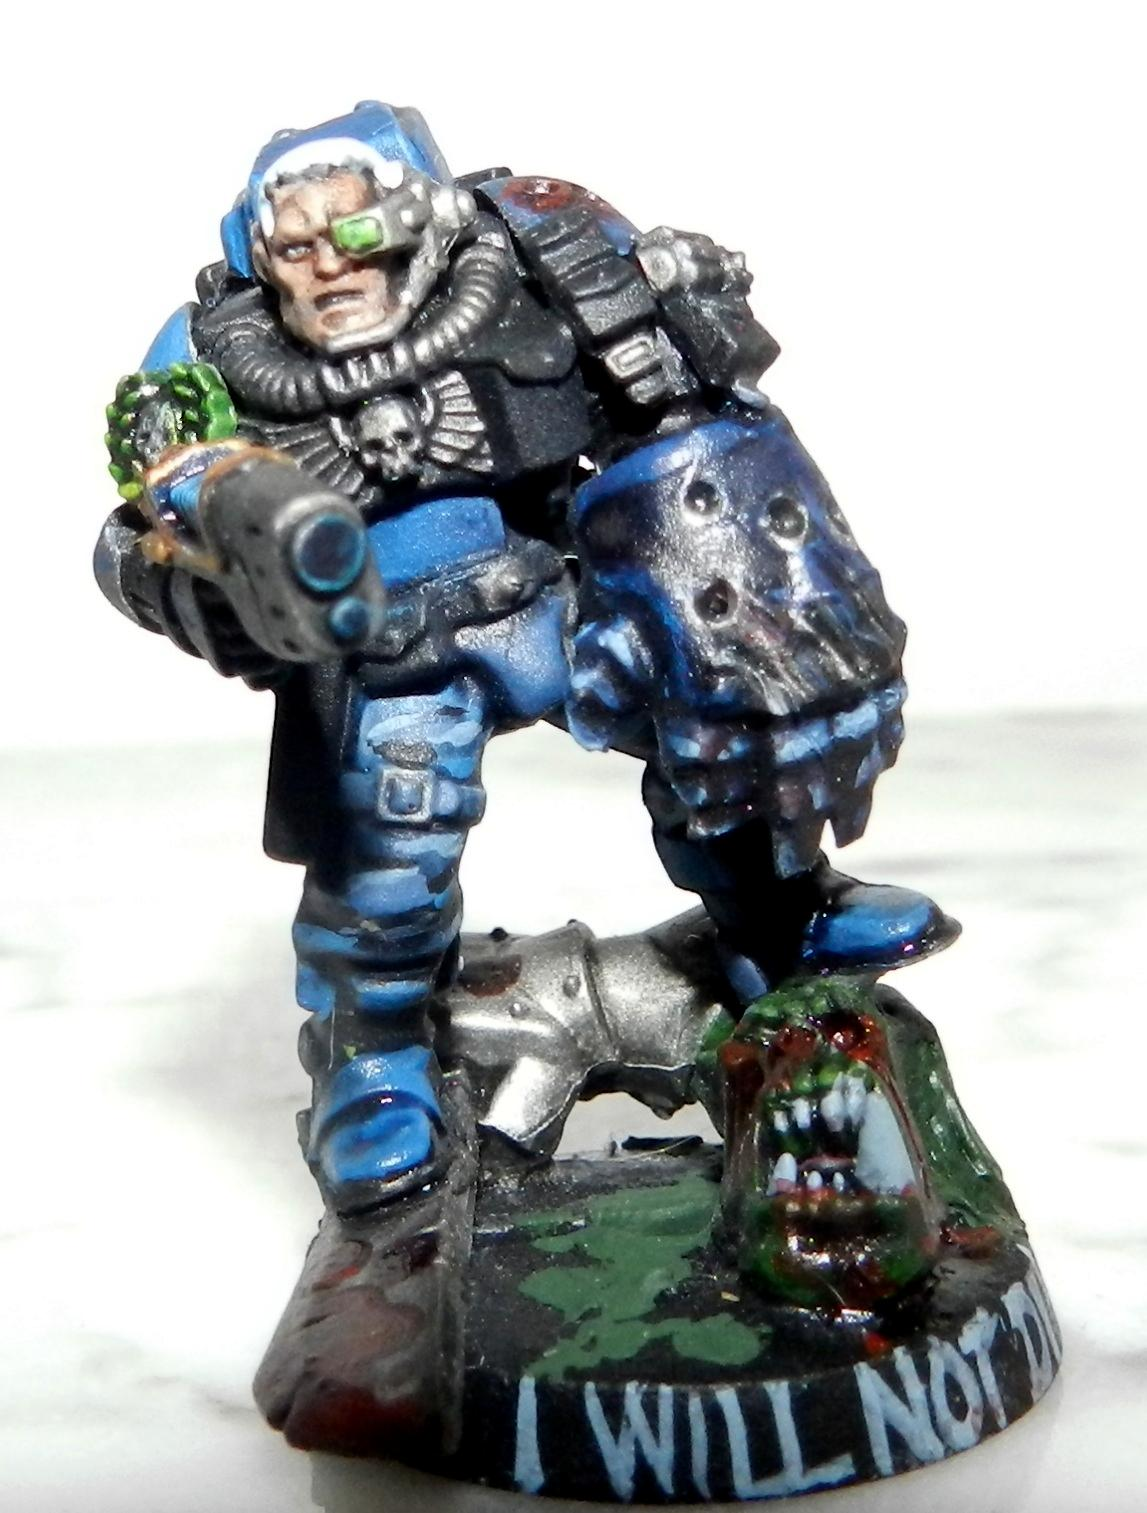 Adeptus Arbites, Blood, Cadians, Camouflage, Carapace, Ccs, Conversion, Count As, French, Gears Of War, Gore, Grenadier, Grenadiers, Guardsmen, Headquarters, Imperial Guard, Junior Officer, Officer, Ork Abuse, Plasma Gun, Power Fist, Scars, Scouts, Sergeant, Urban, Warhammer 40,000, Wolf Scout, Work In Progress